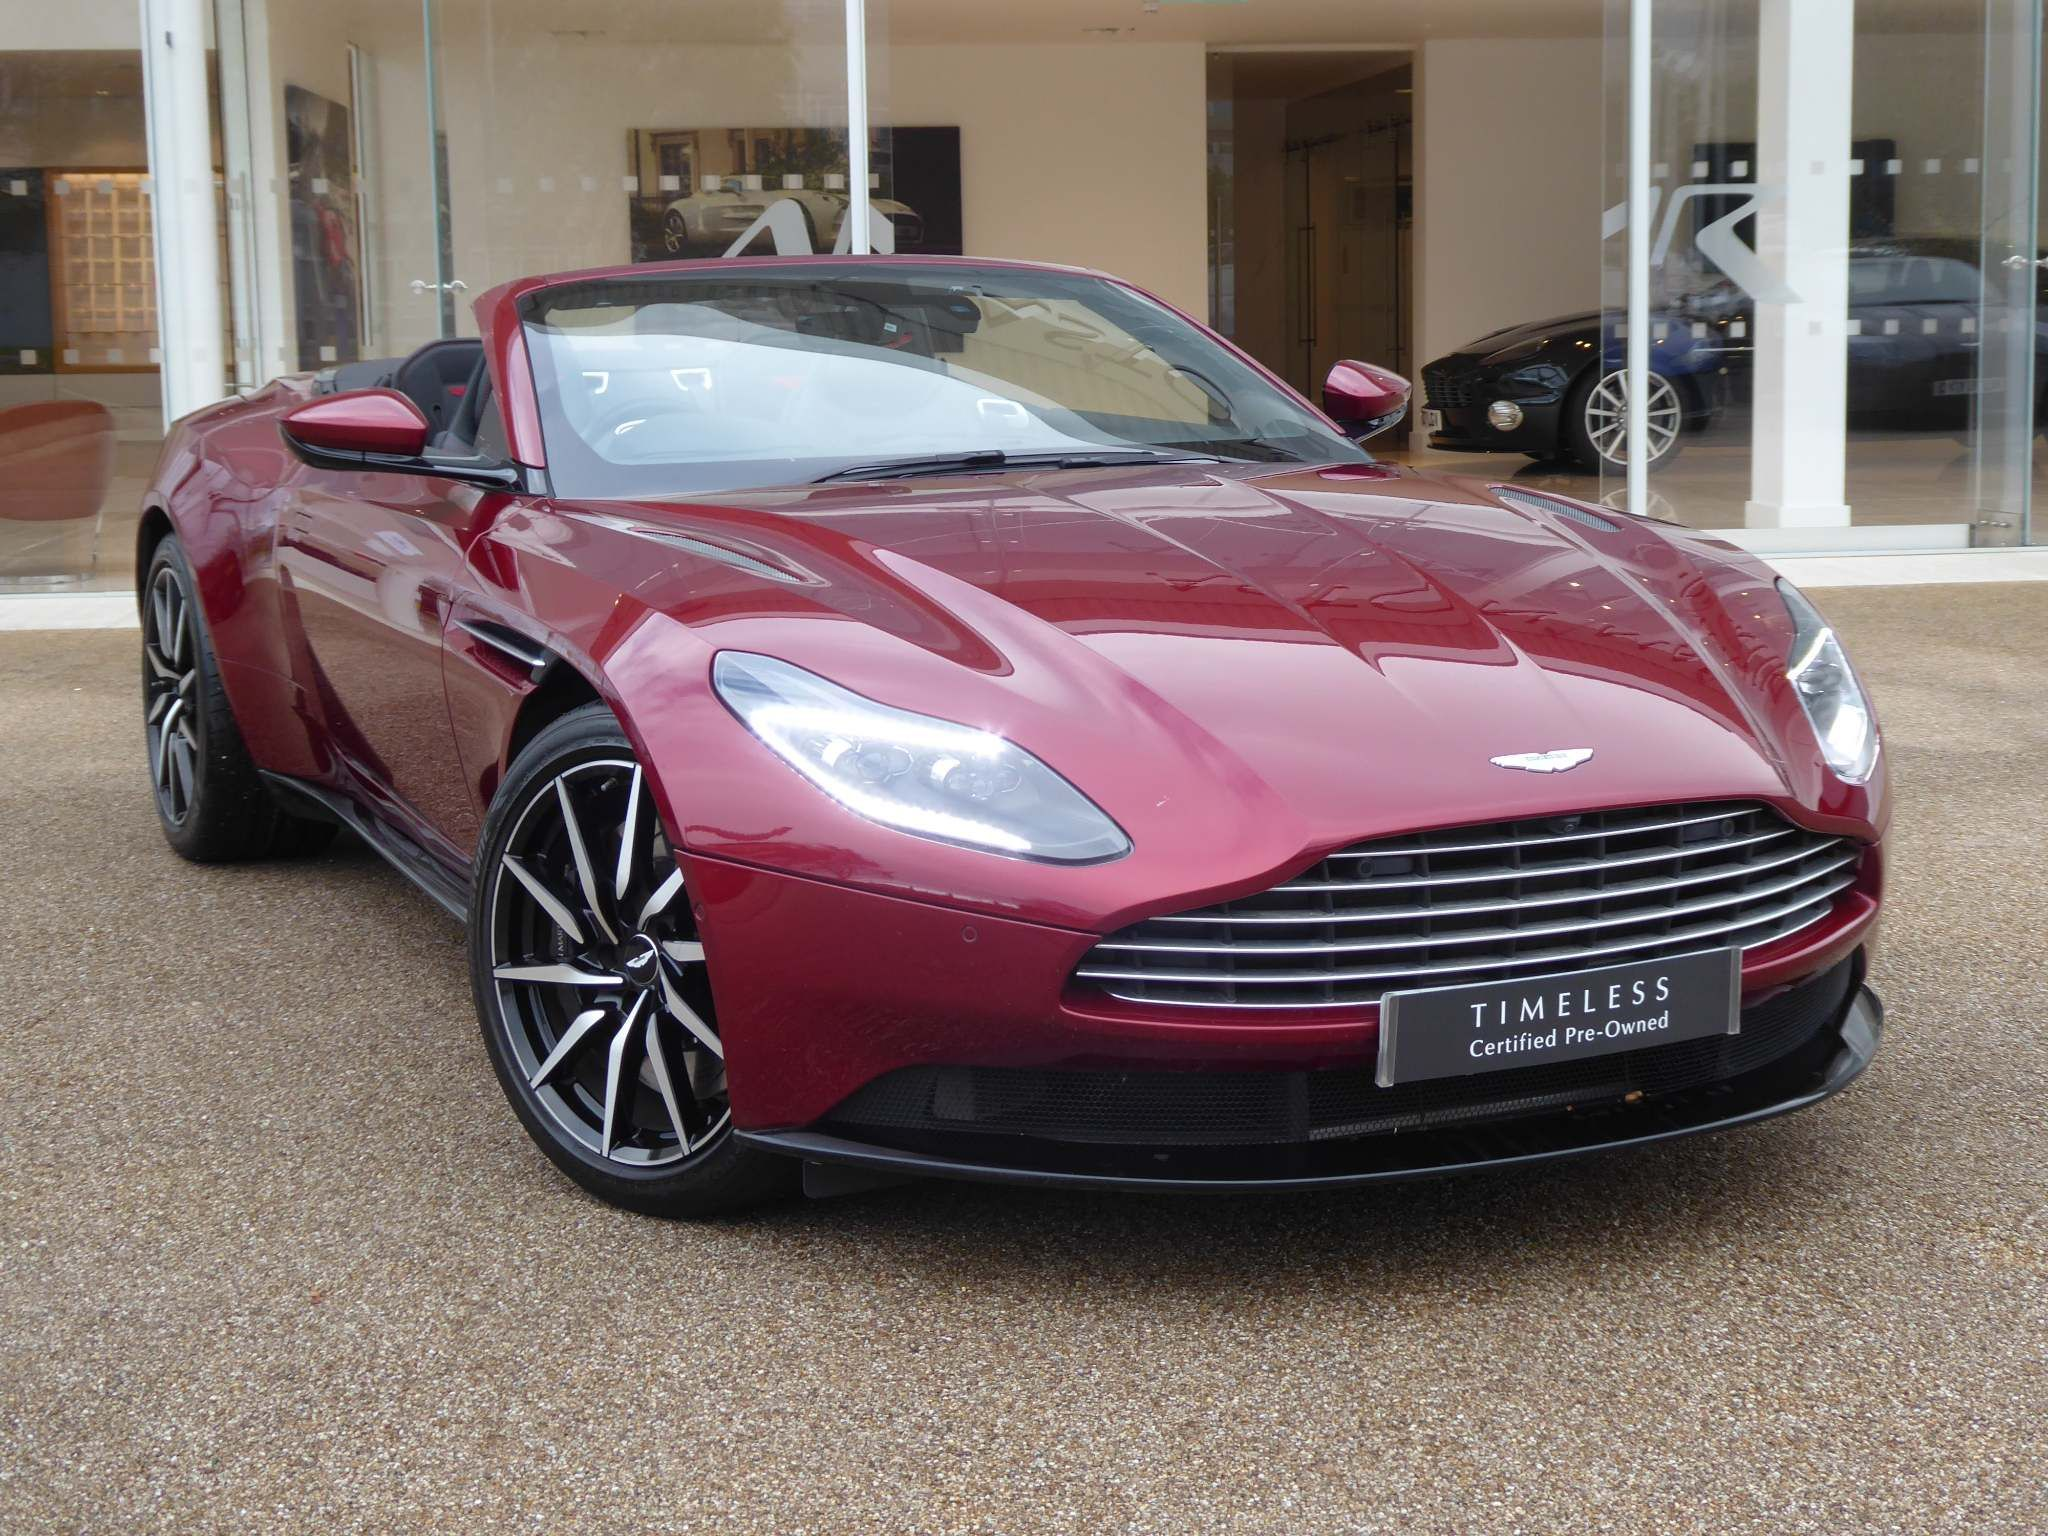 Red Aston Martin Db11 Used Cars For Sale Autotrader Uk